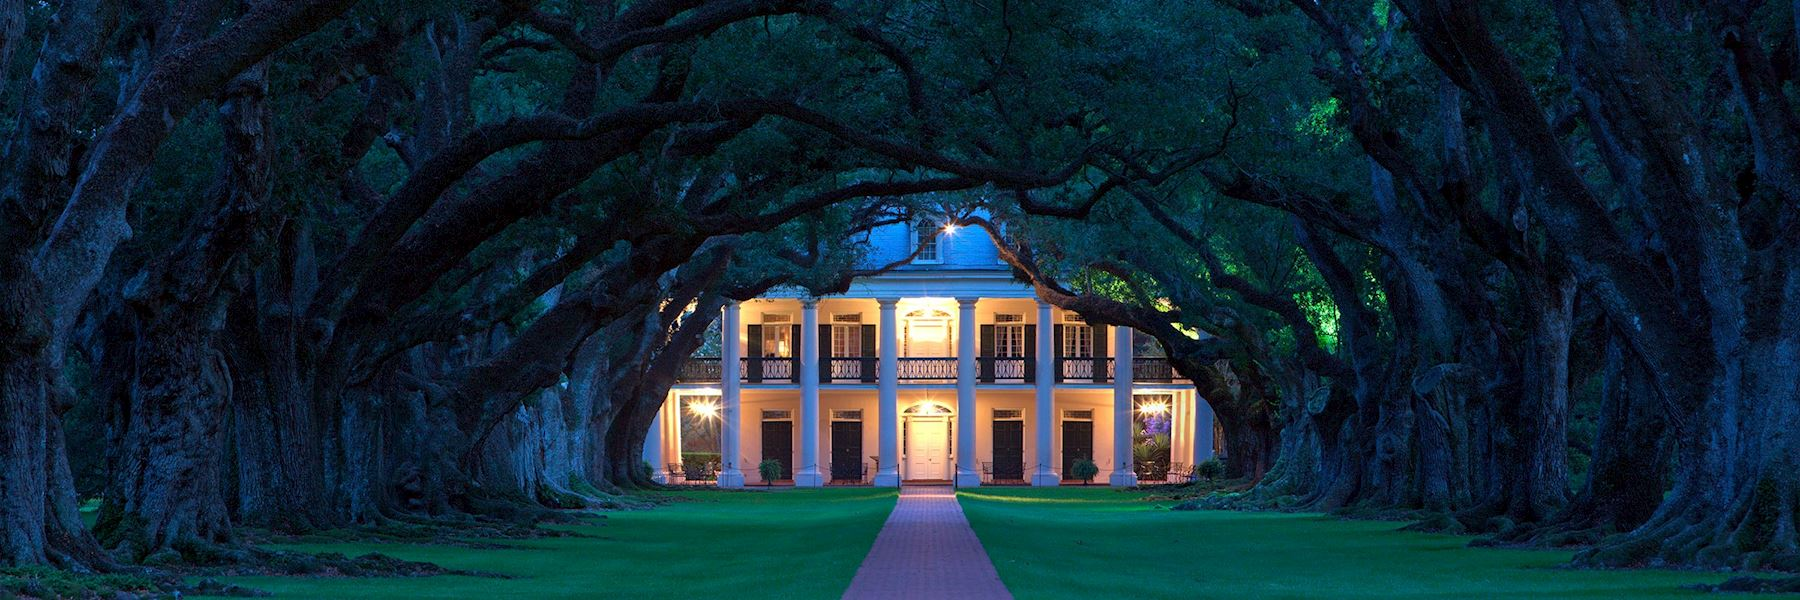 Things to do in the Deep South